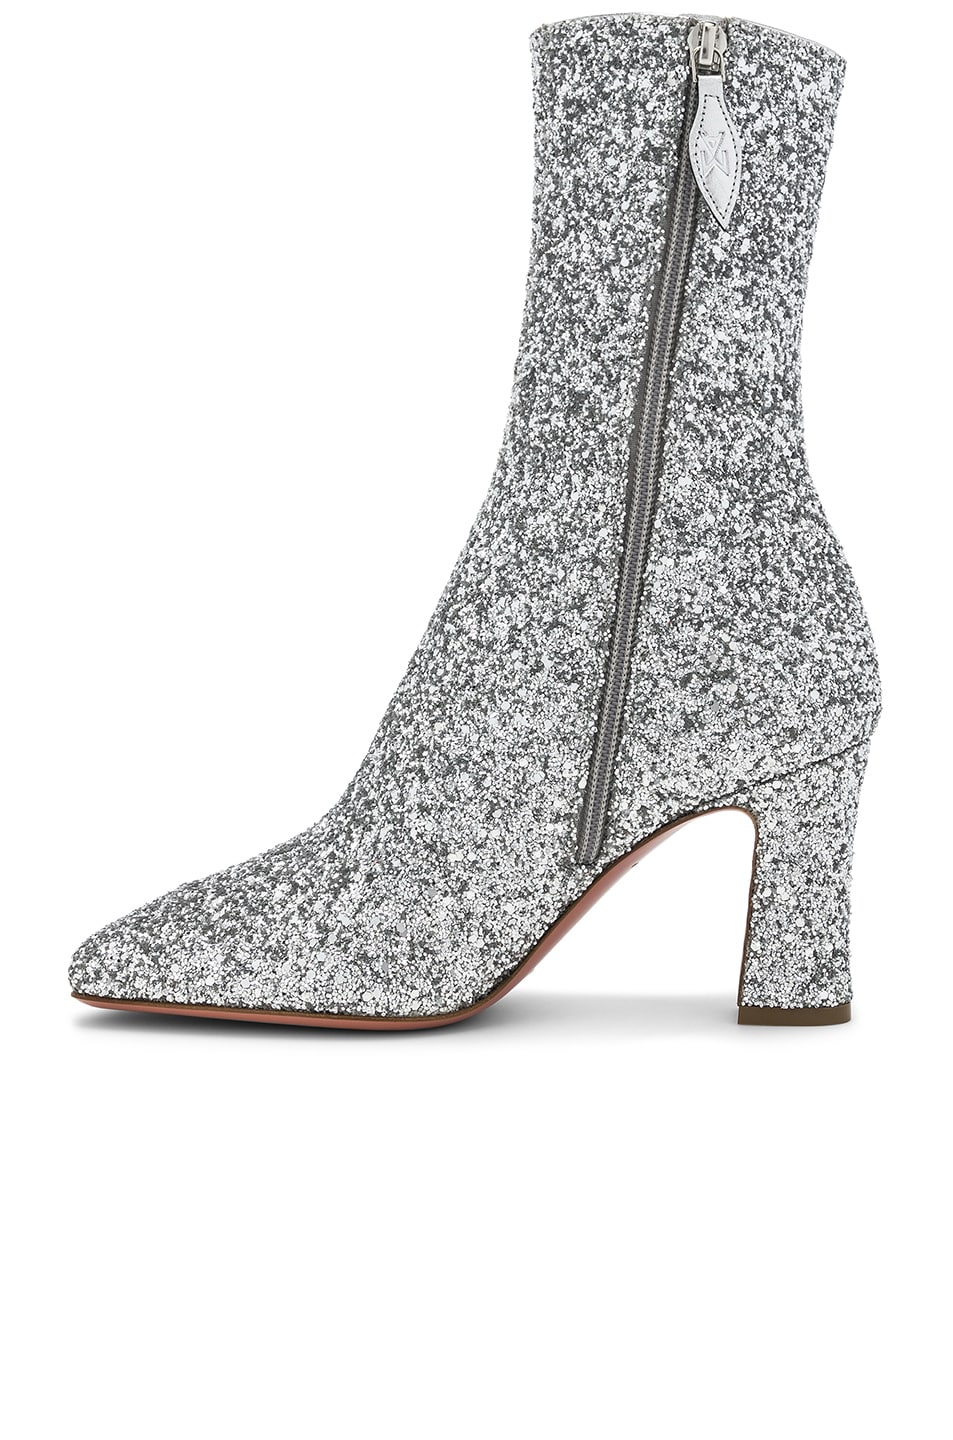 Image 5 of AMINA MUADDI Glitter Stretch Sabrina Ankle Boots in Silver